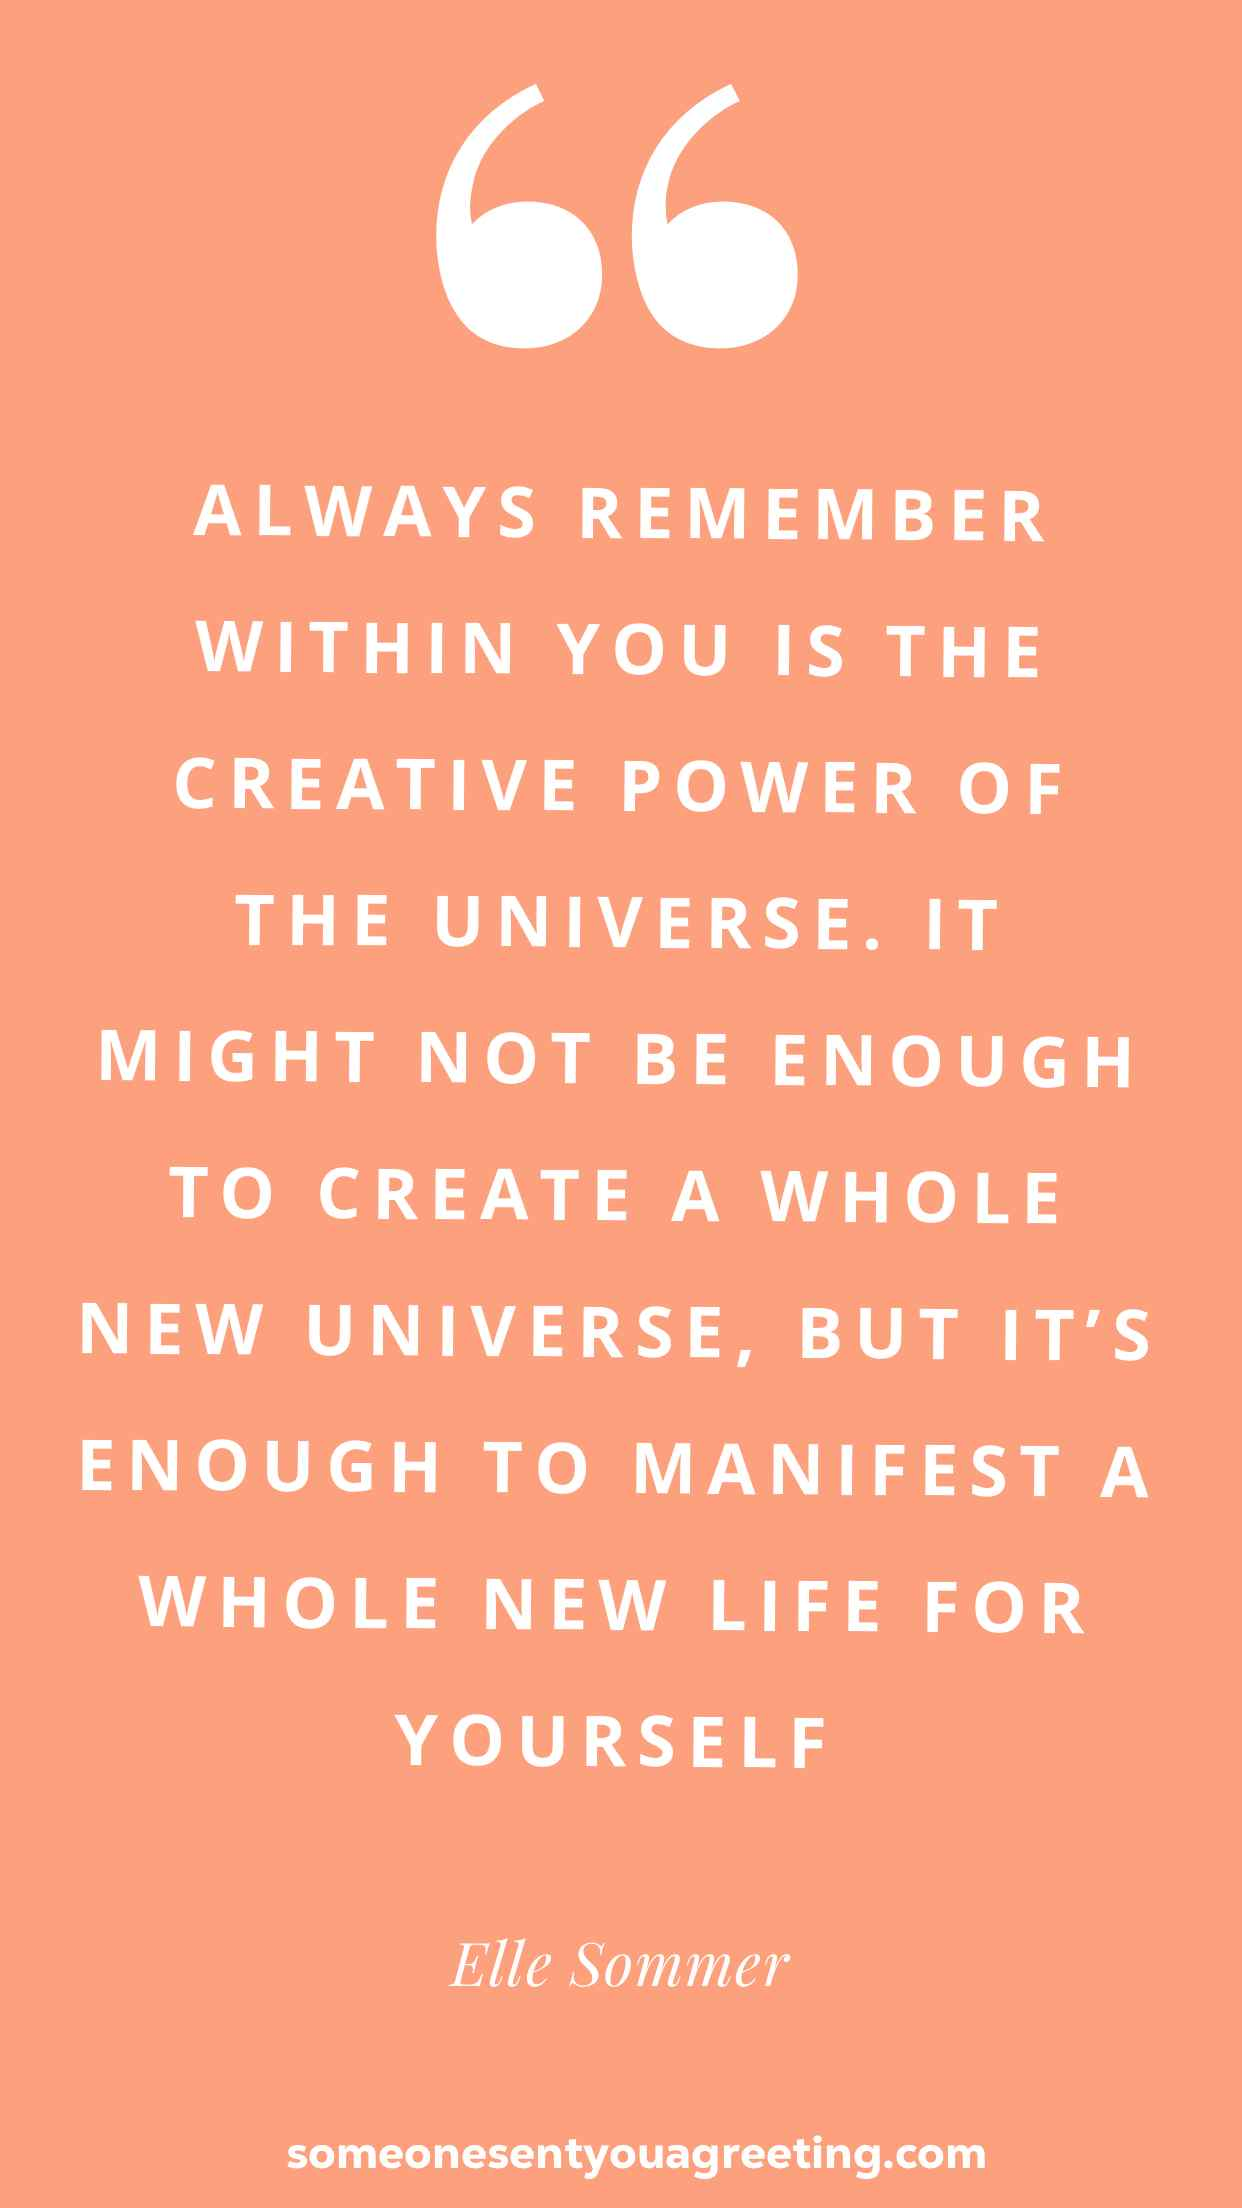 Elle sommer power quote